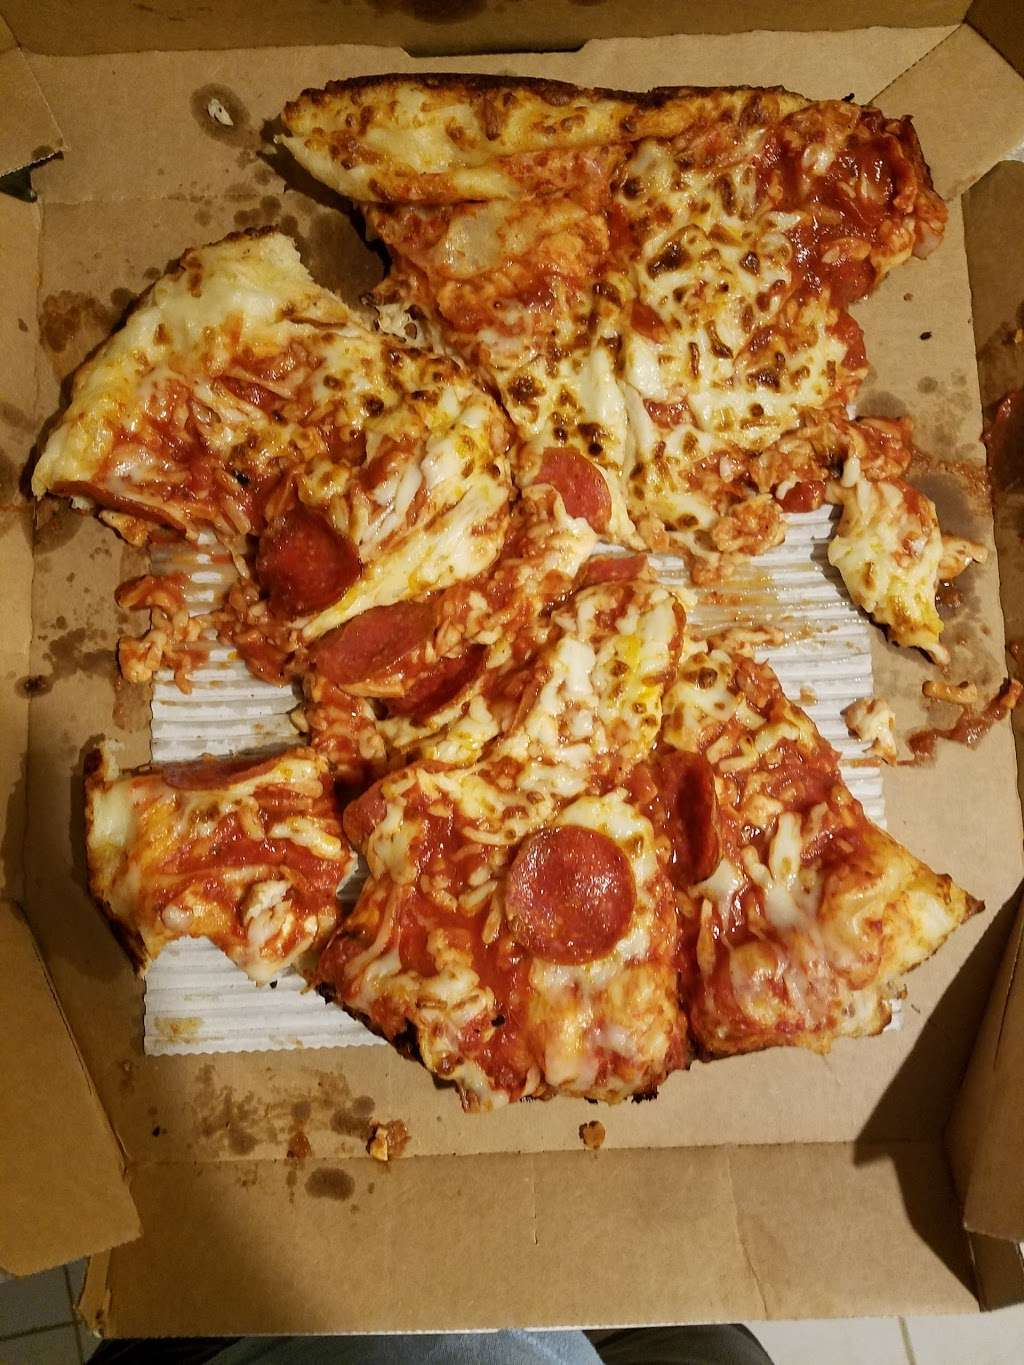 Dominos Pizza - meal delivery  | Photo 10 of 10 | Address: 352 Anderson Ave, Cliffside Park, NJ 07010, USA | Phone: (201) 945-3700